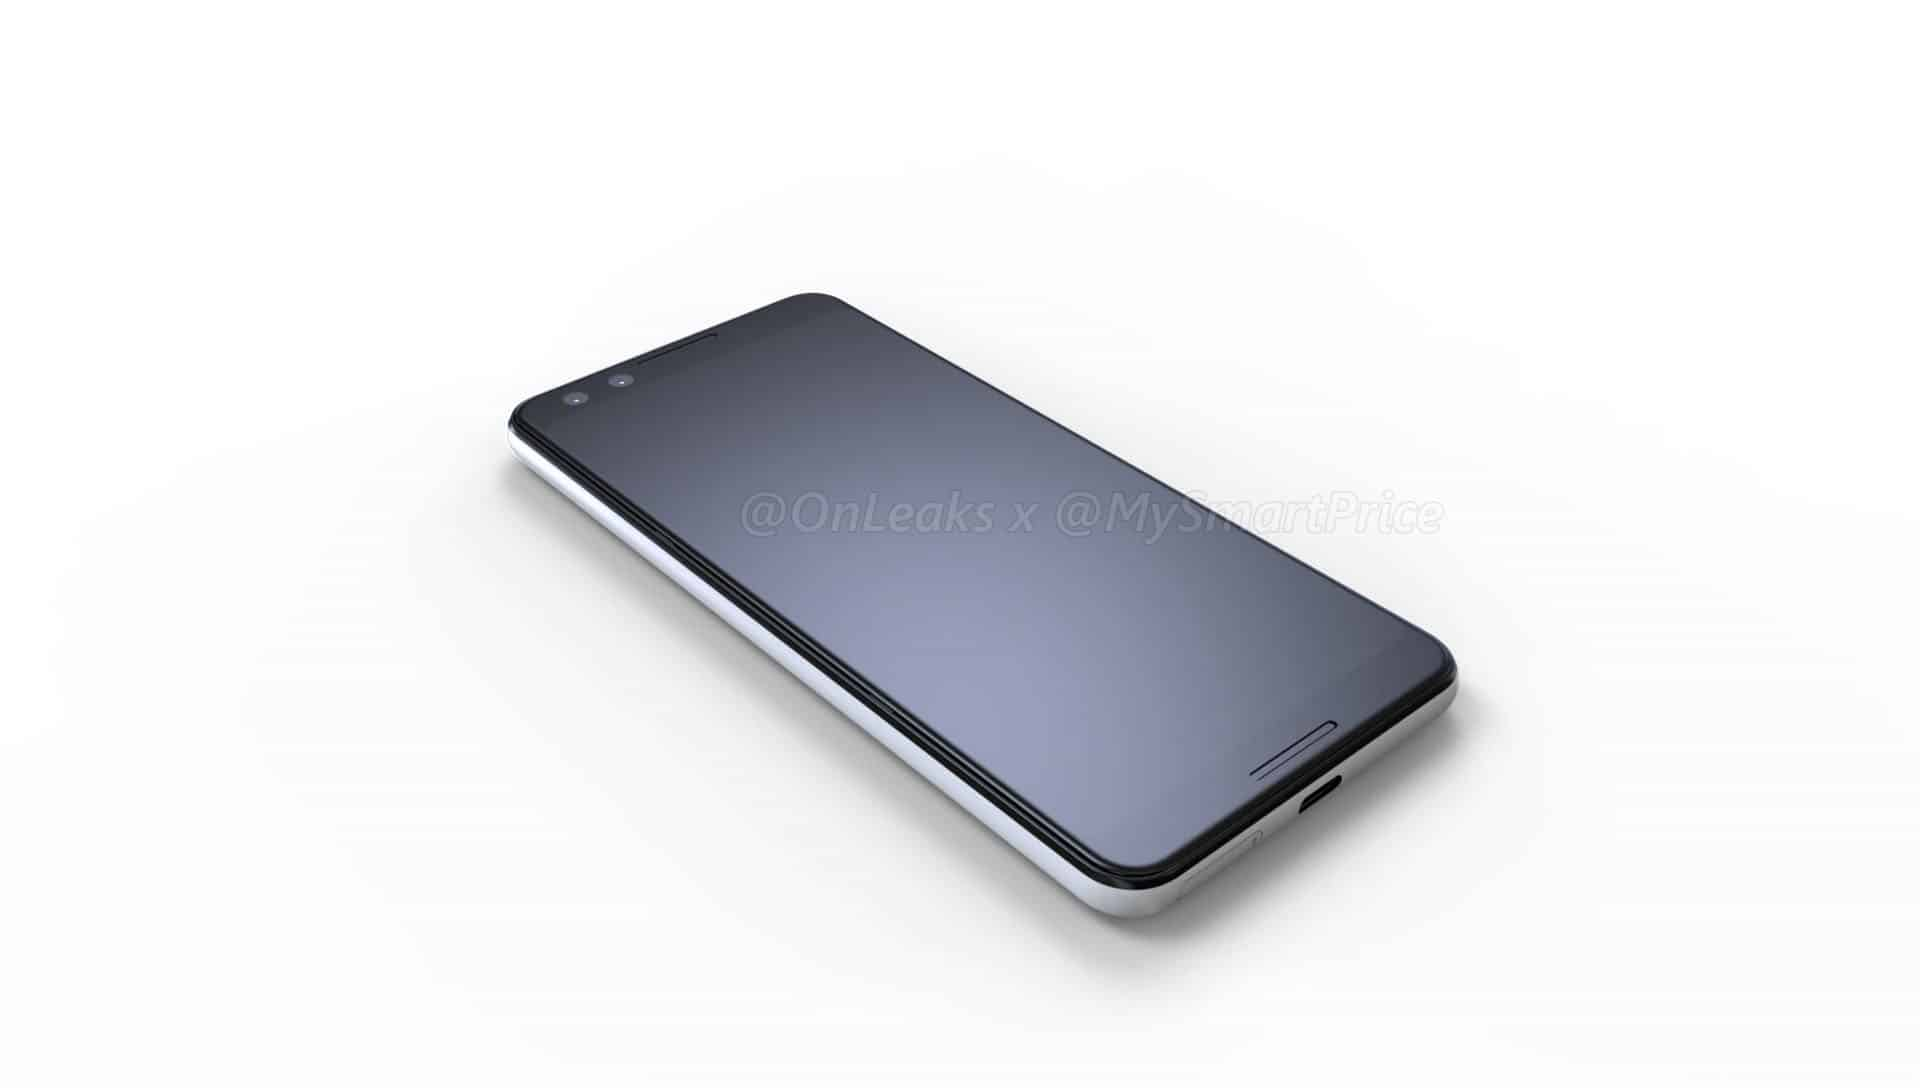 Pixel 3 renders give us our best look at the devices yet